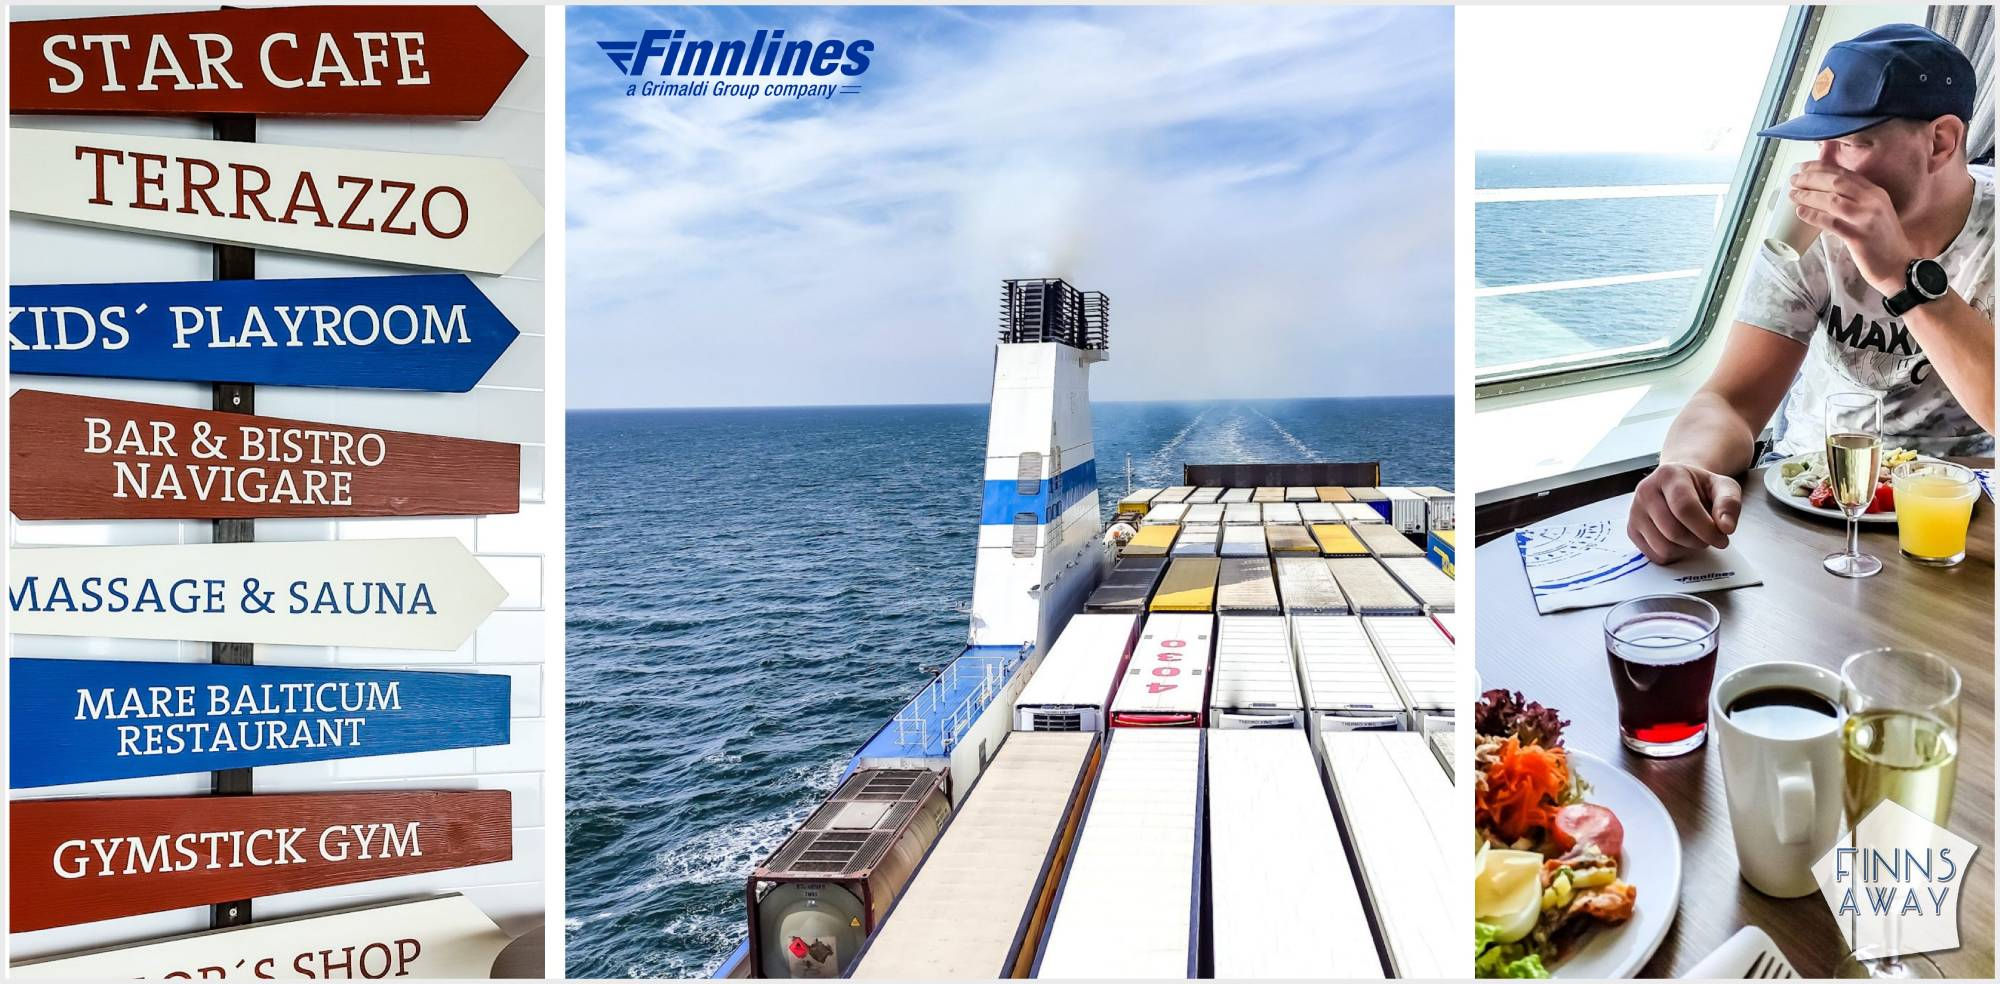 Crossing the Baltic Sea with Finnlines from Travemünde in Germany to Helsinki in Finland | FinnsAway Travel Blog